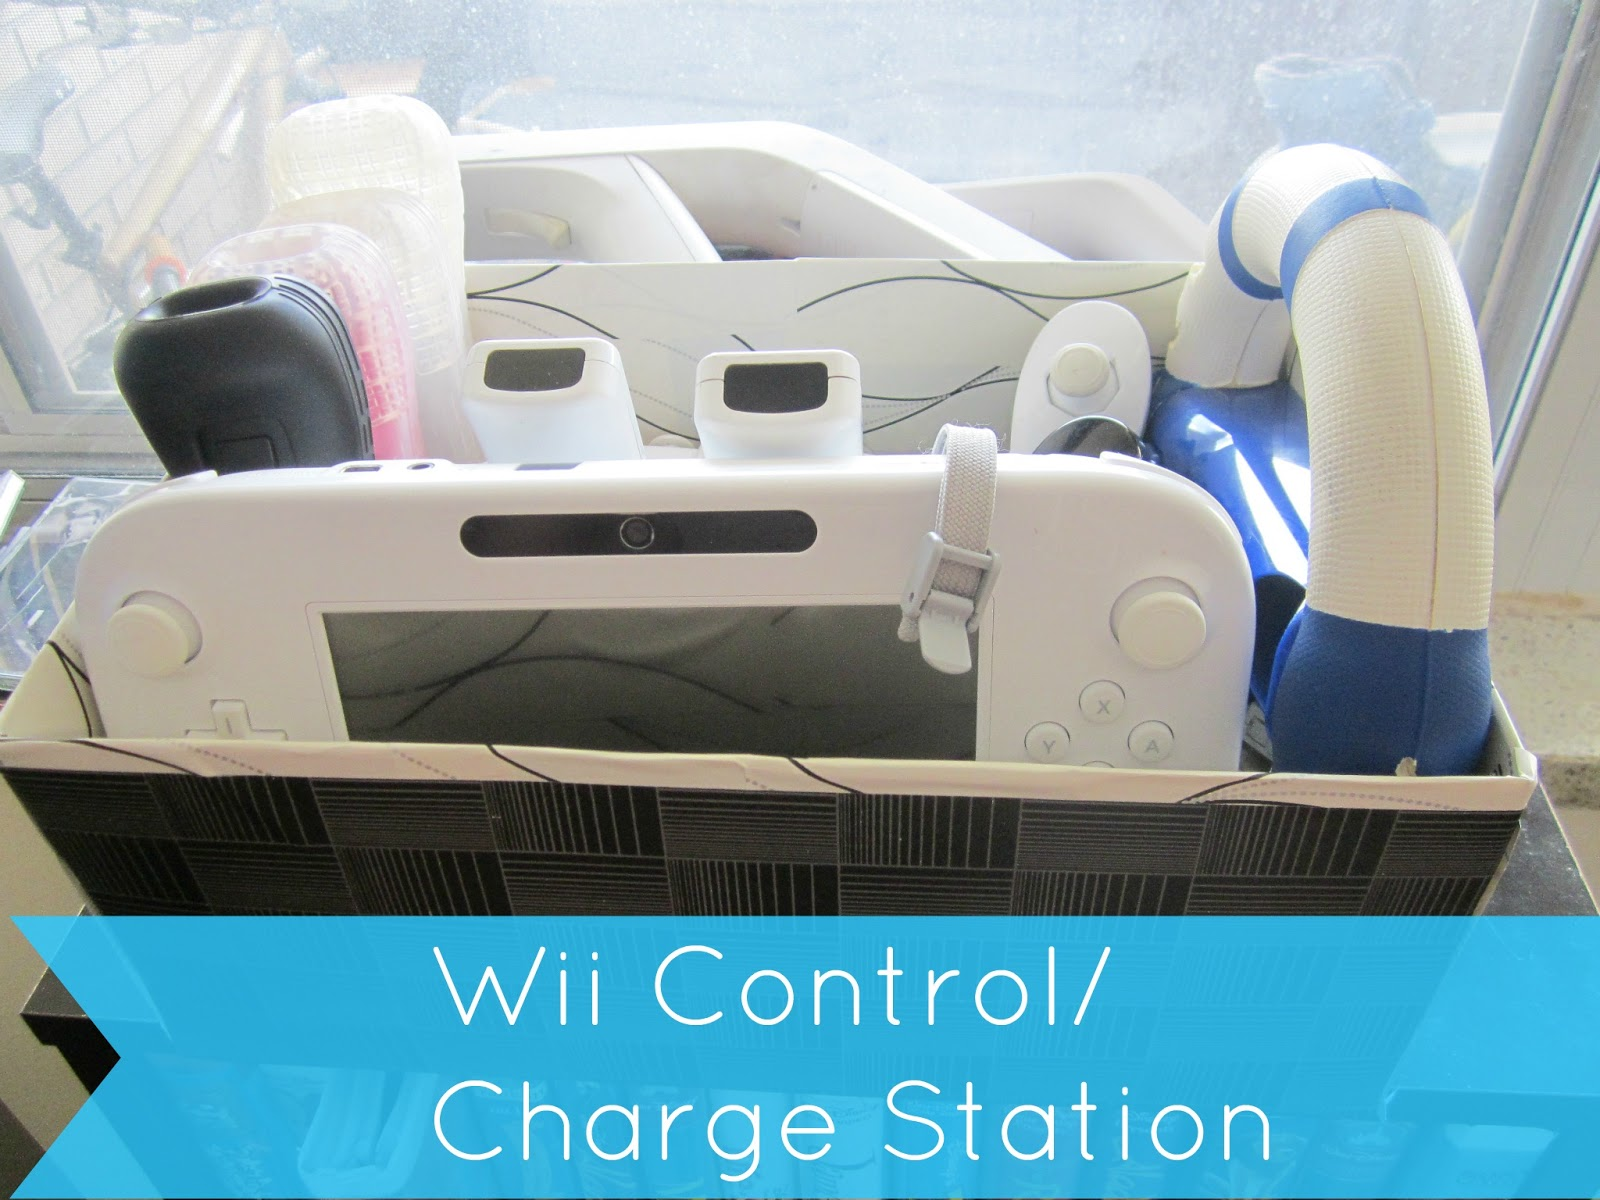 diy wii control charge station